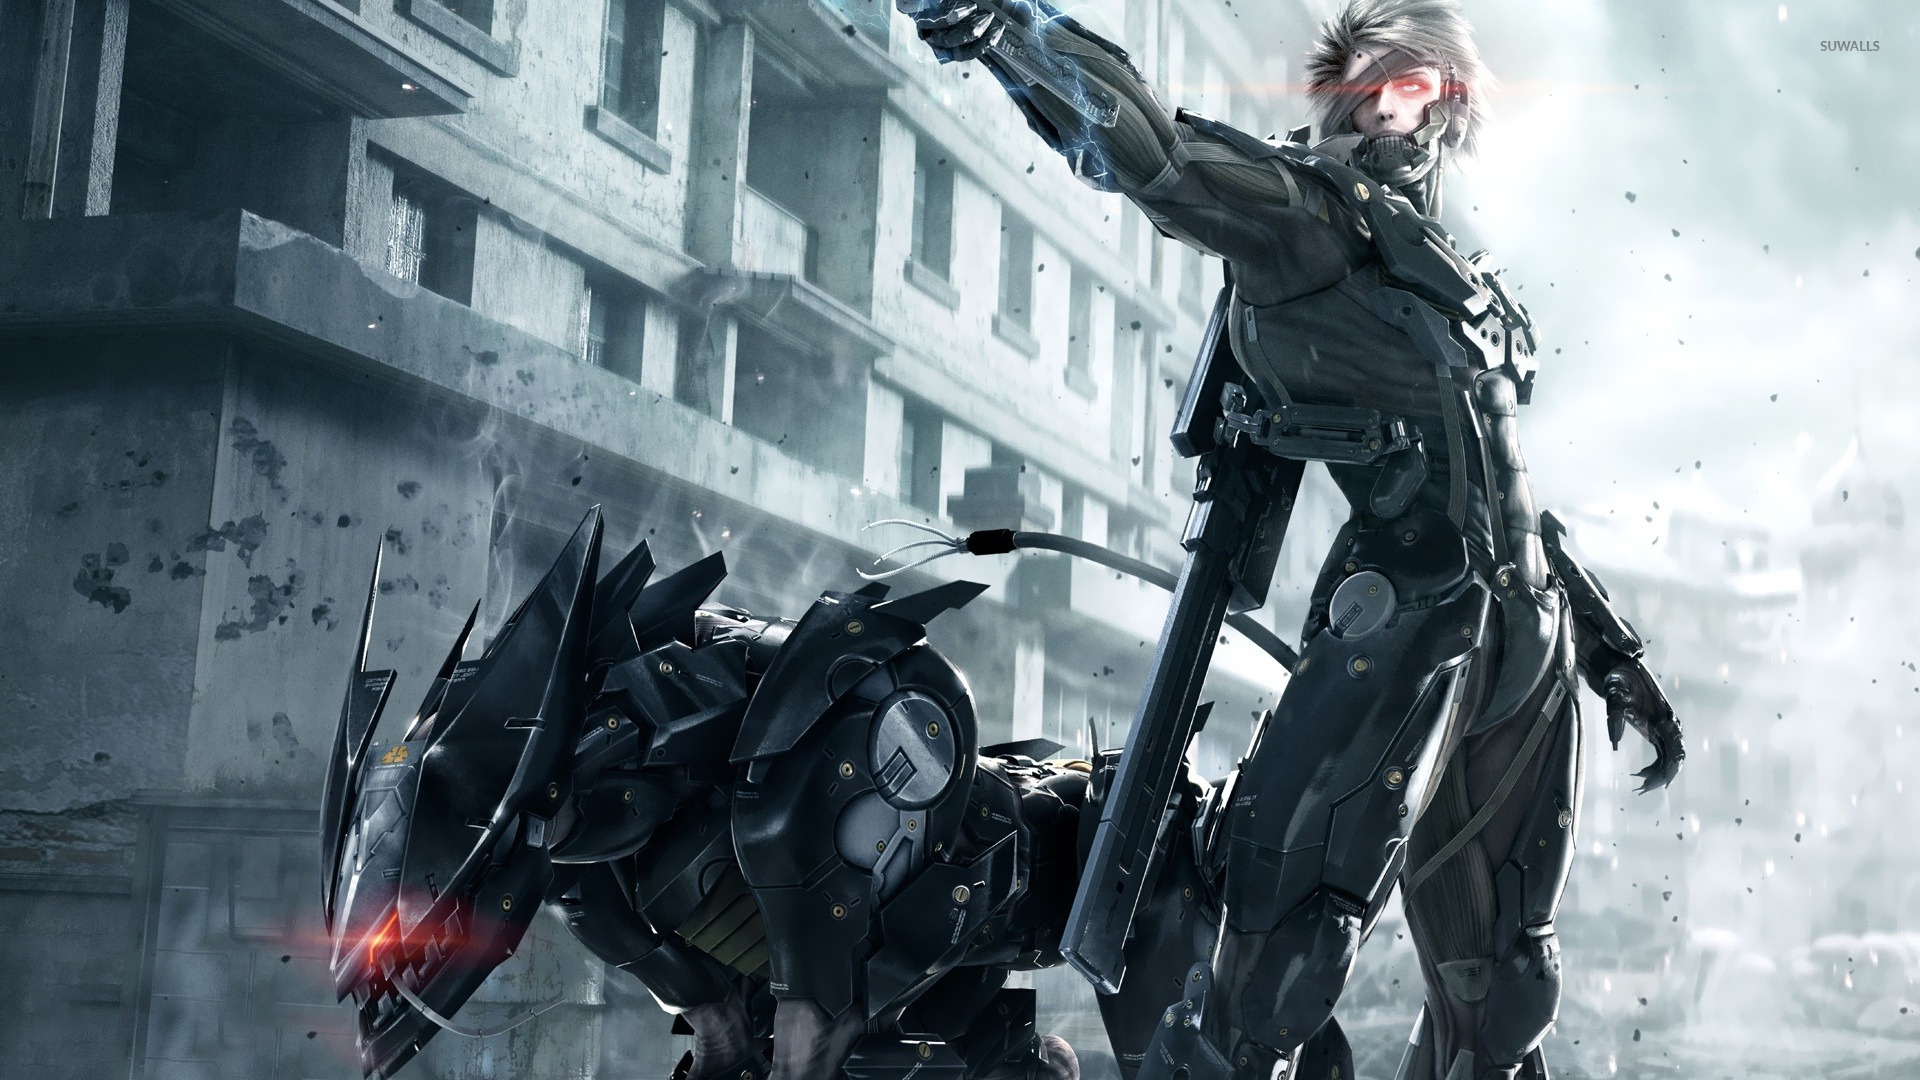 Raiden metal gear rising revengeance wallpaper game raiden metal gear rising revengeance wallpaper voltagebd Image collections